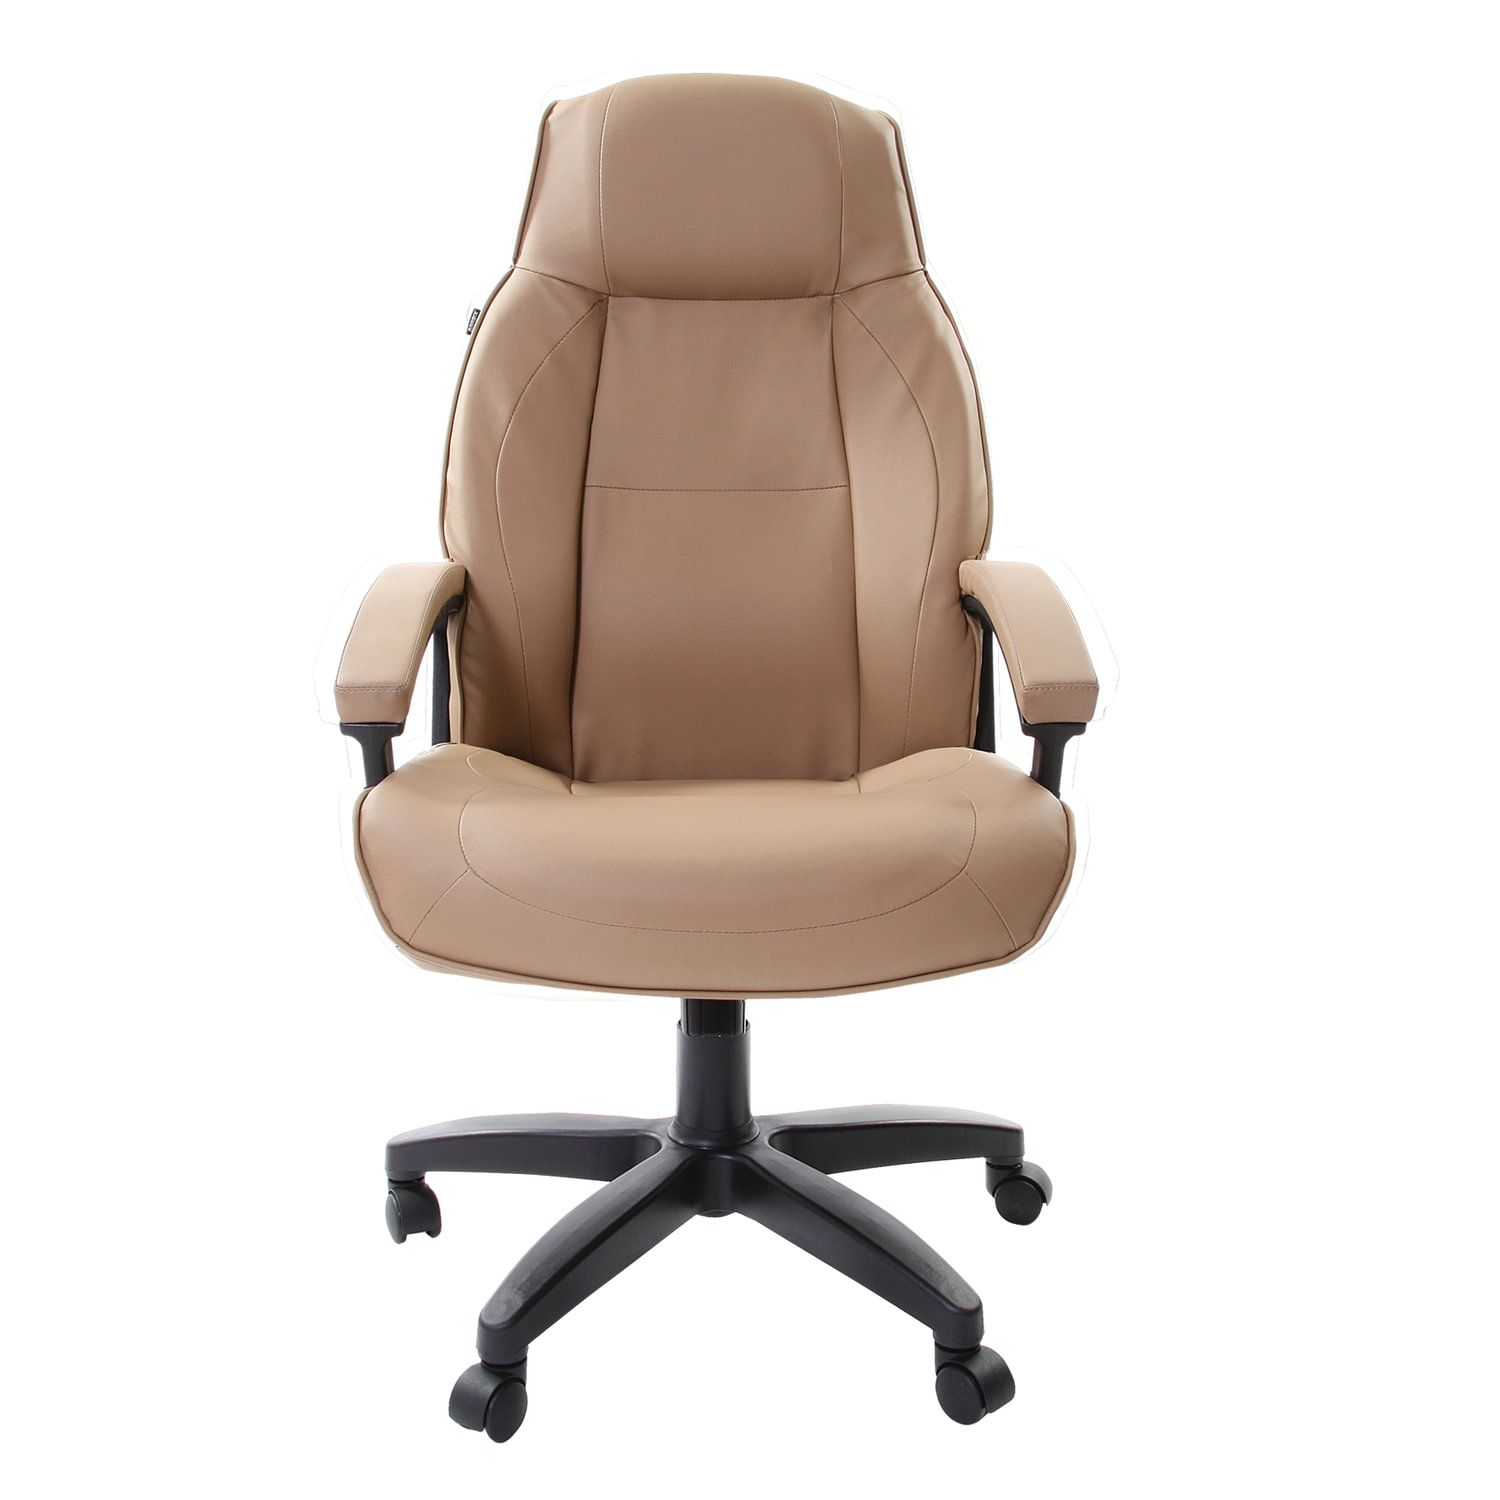 """Office chair BRABIX """"Formula EX-537"""", eco-leather, sand"""